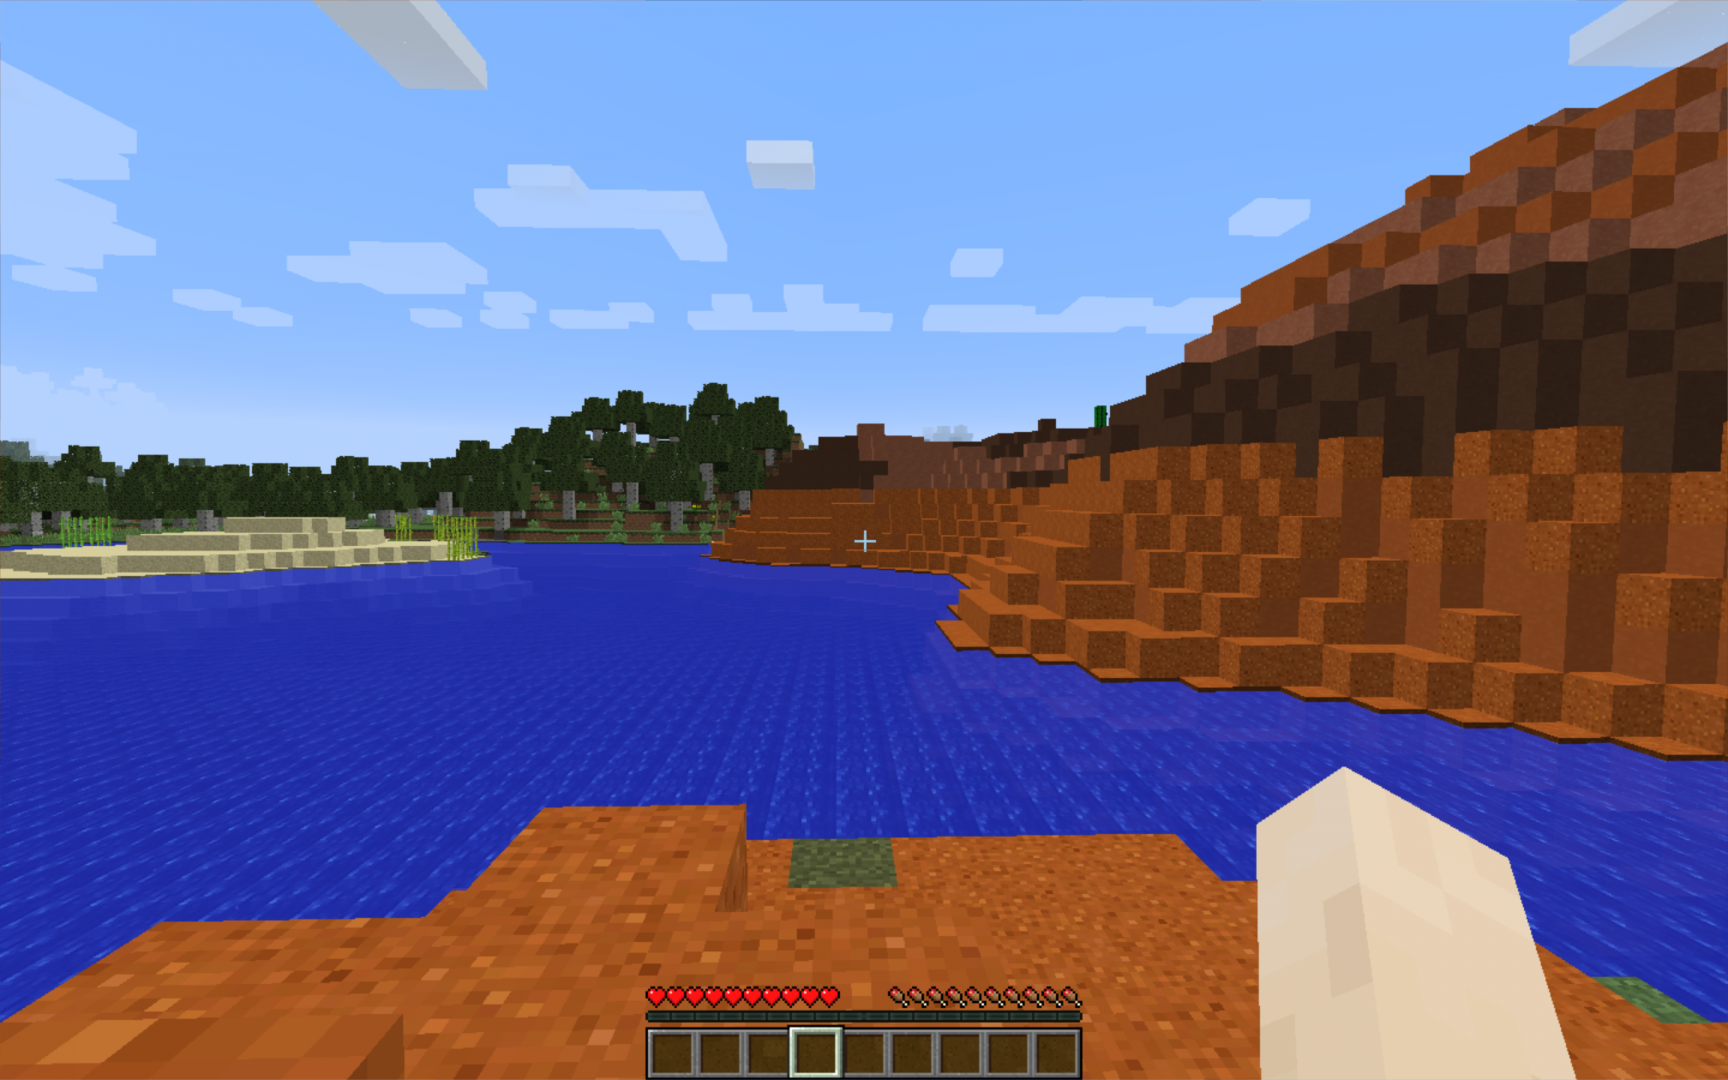 Minecraft is Being Used to Create Artificial Intelligence